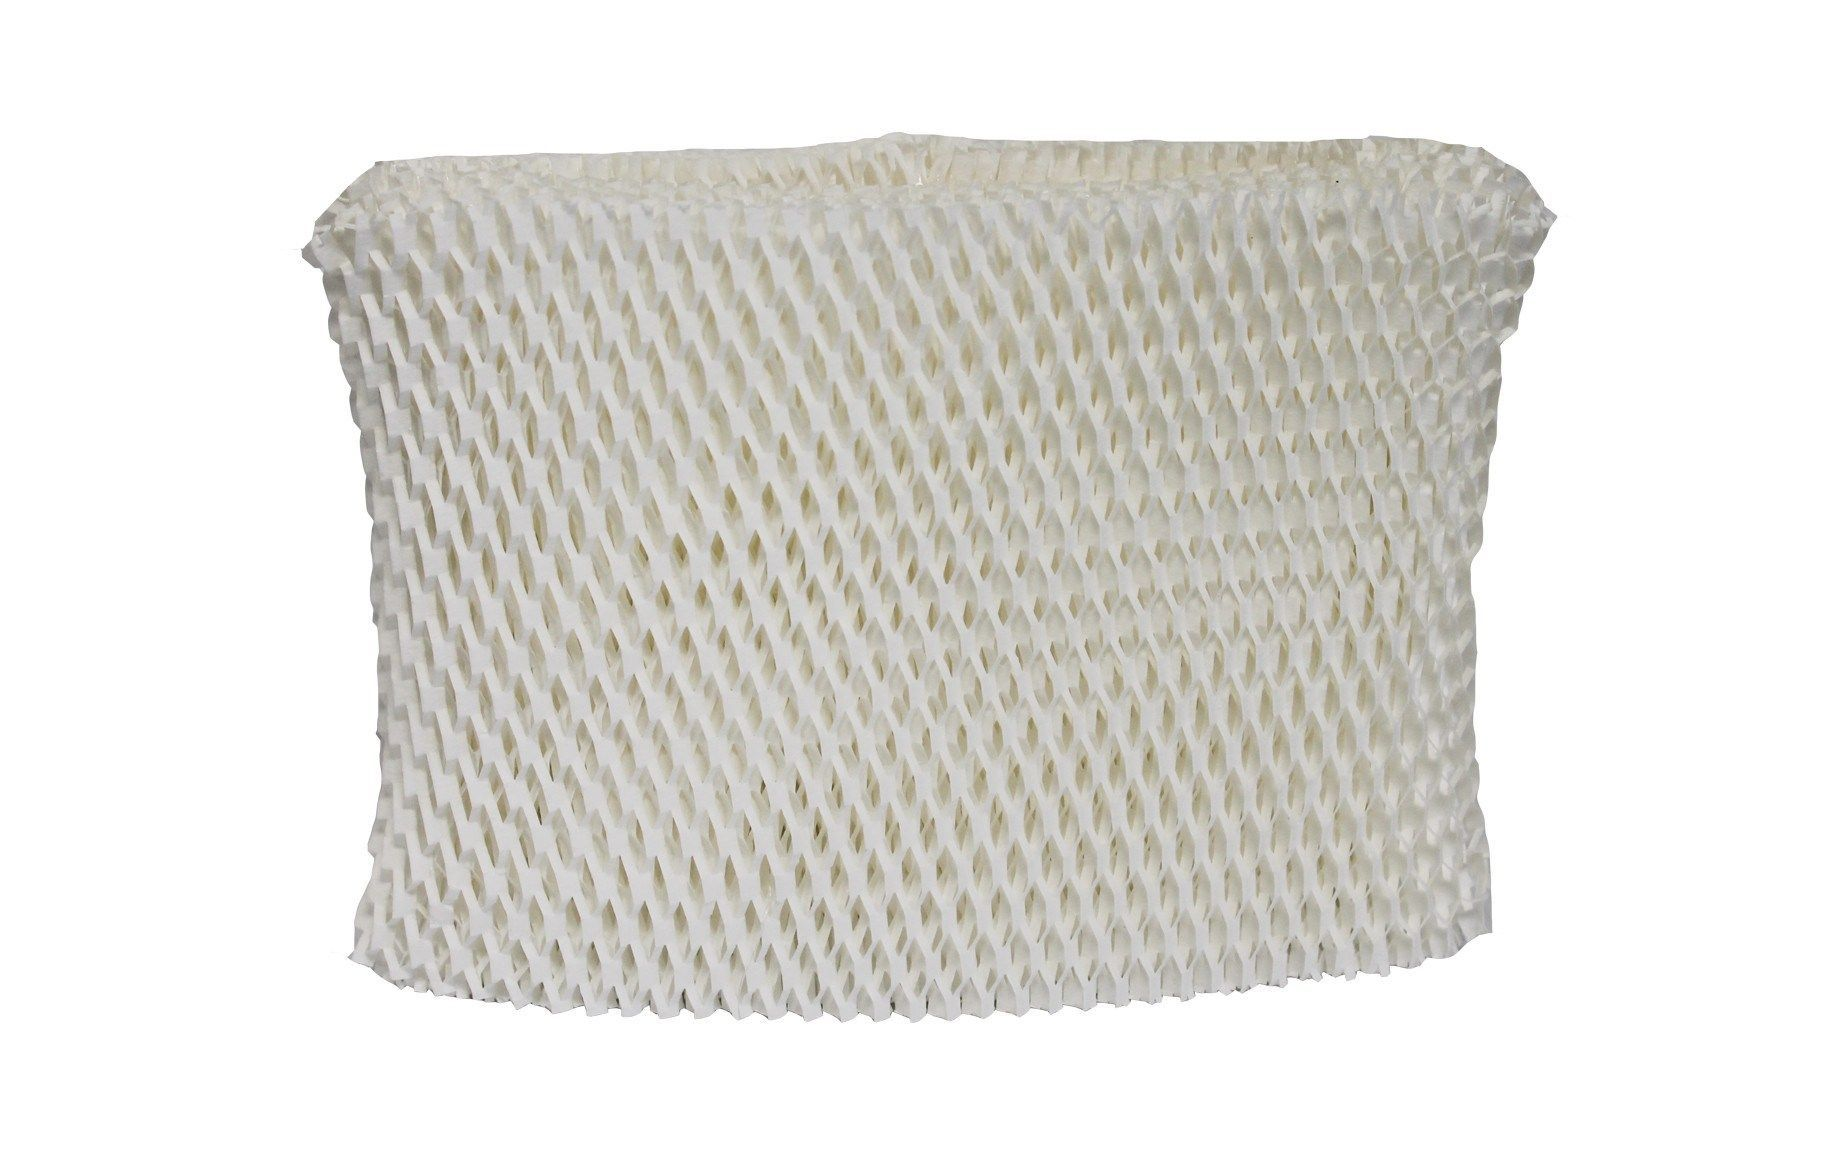 Replacement Humidifier Filter, Fits Honeywell HC 888 HCM